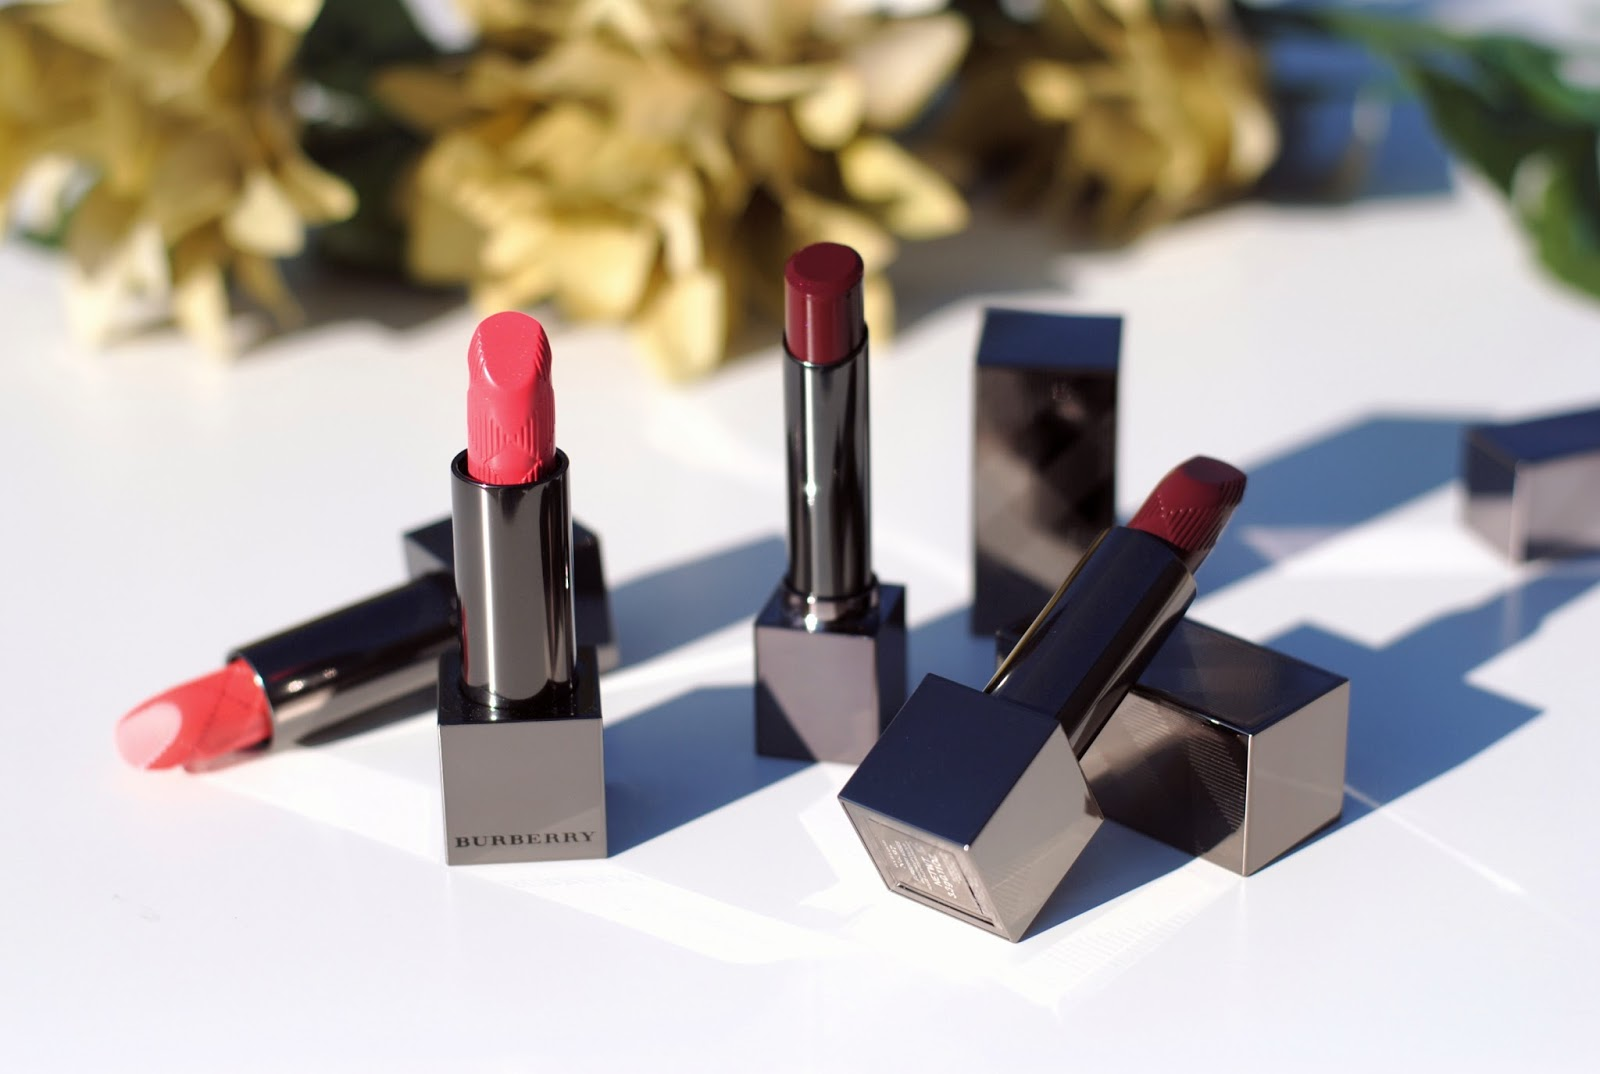 burberry kisses lipstick review